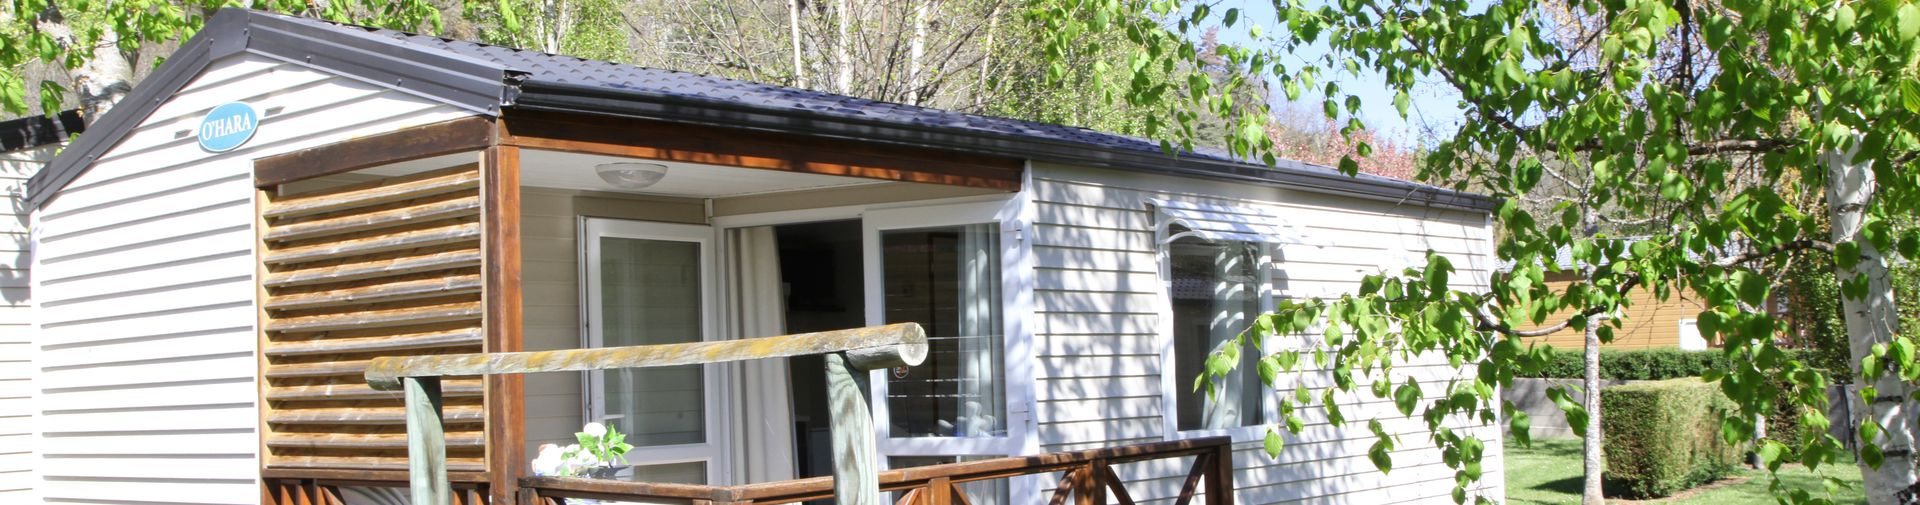 camping-auvergne-location-mobil-home